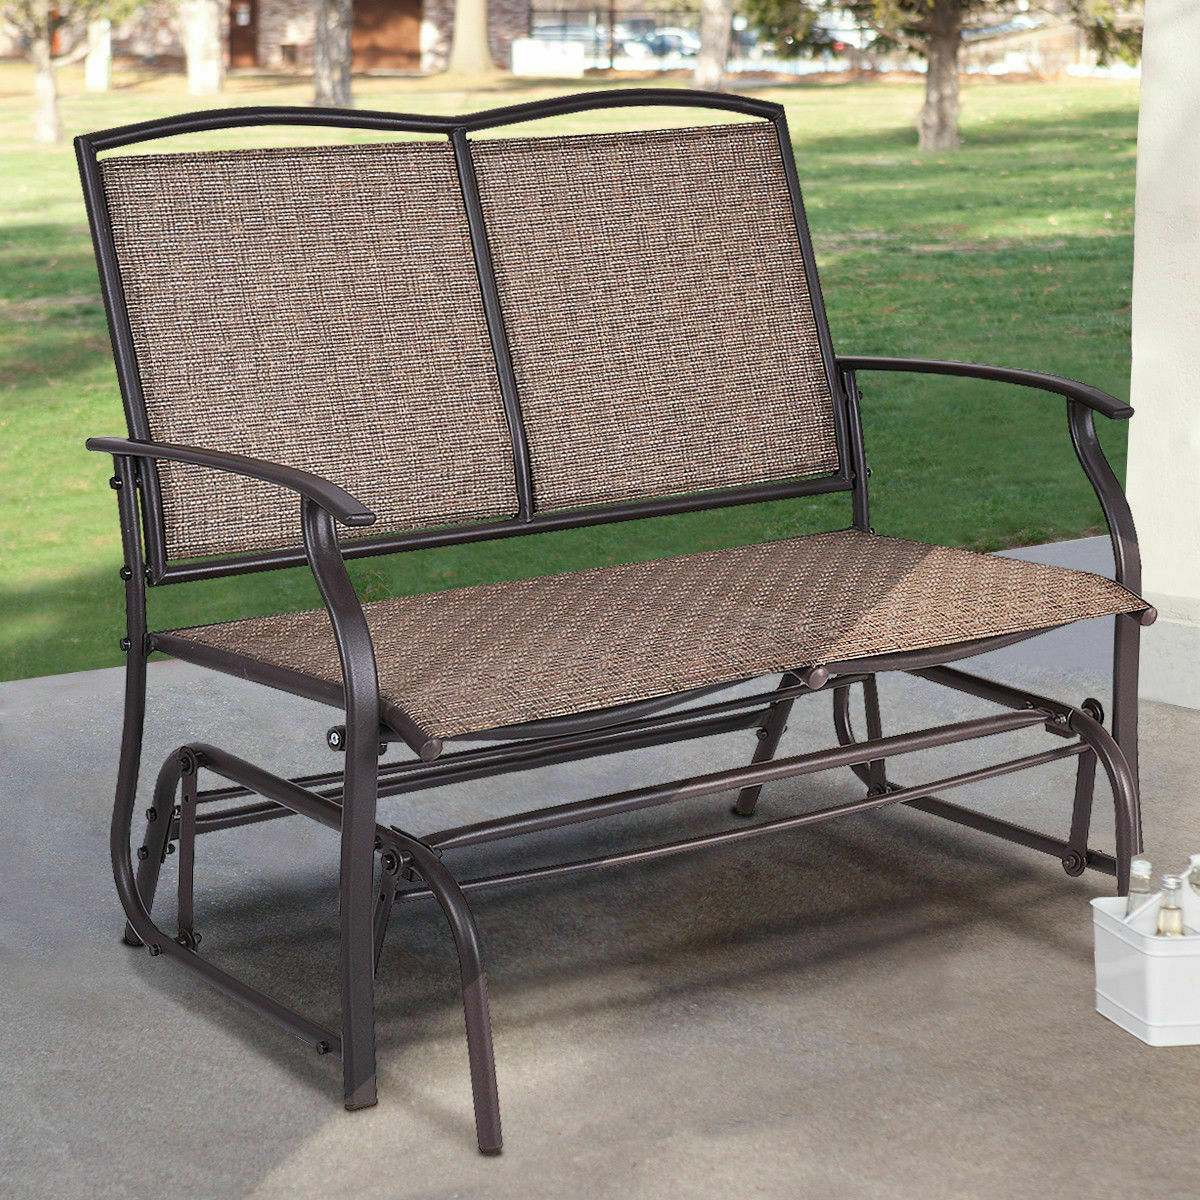 Patio Glider Rocking Bench Double 2 Person Chair Loveseat Armchair Backyard New Within Loveseat Glider Benches (View 14 of 25)